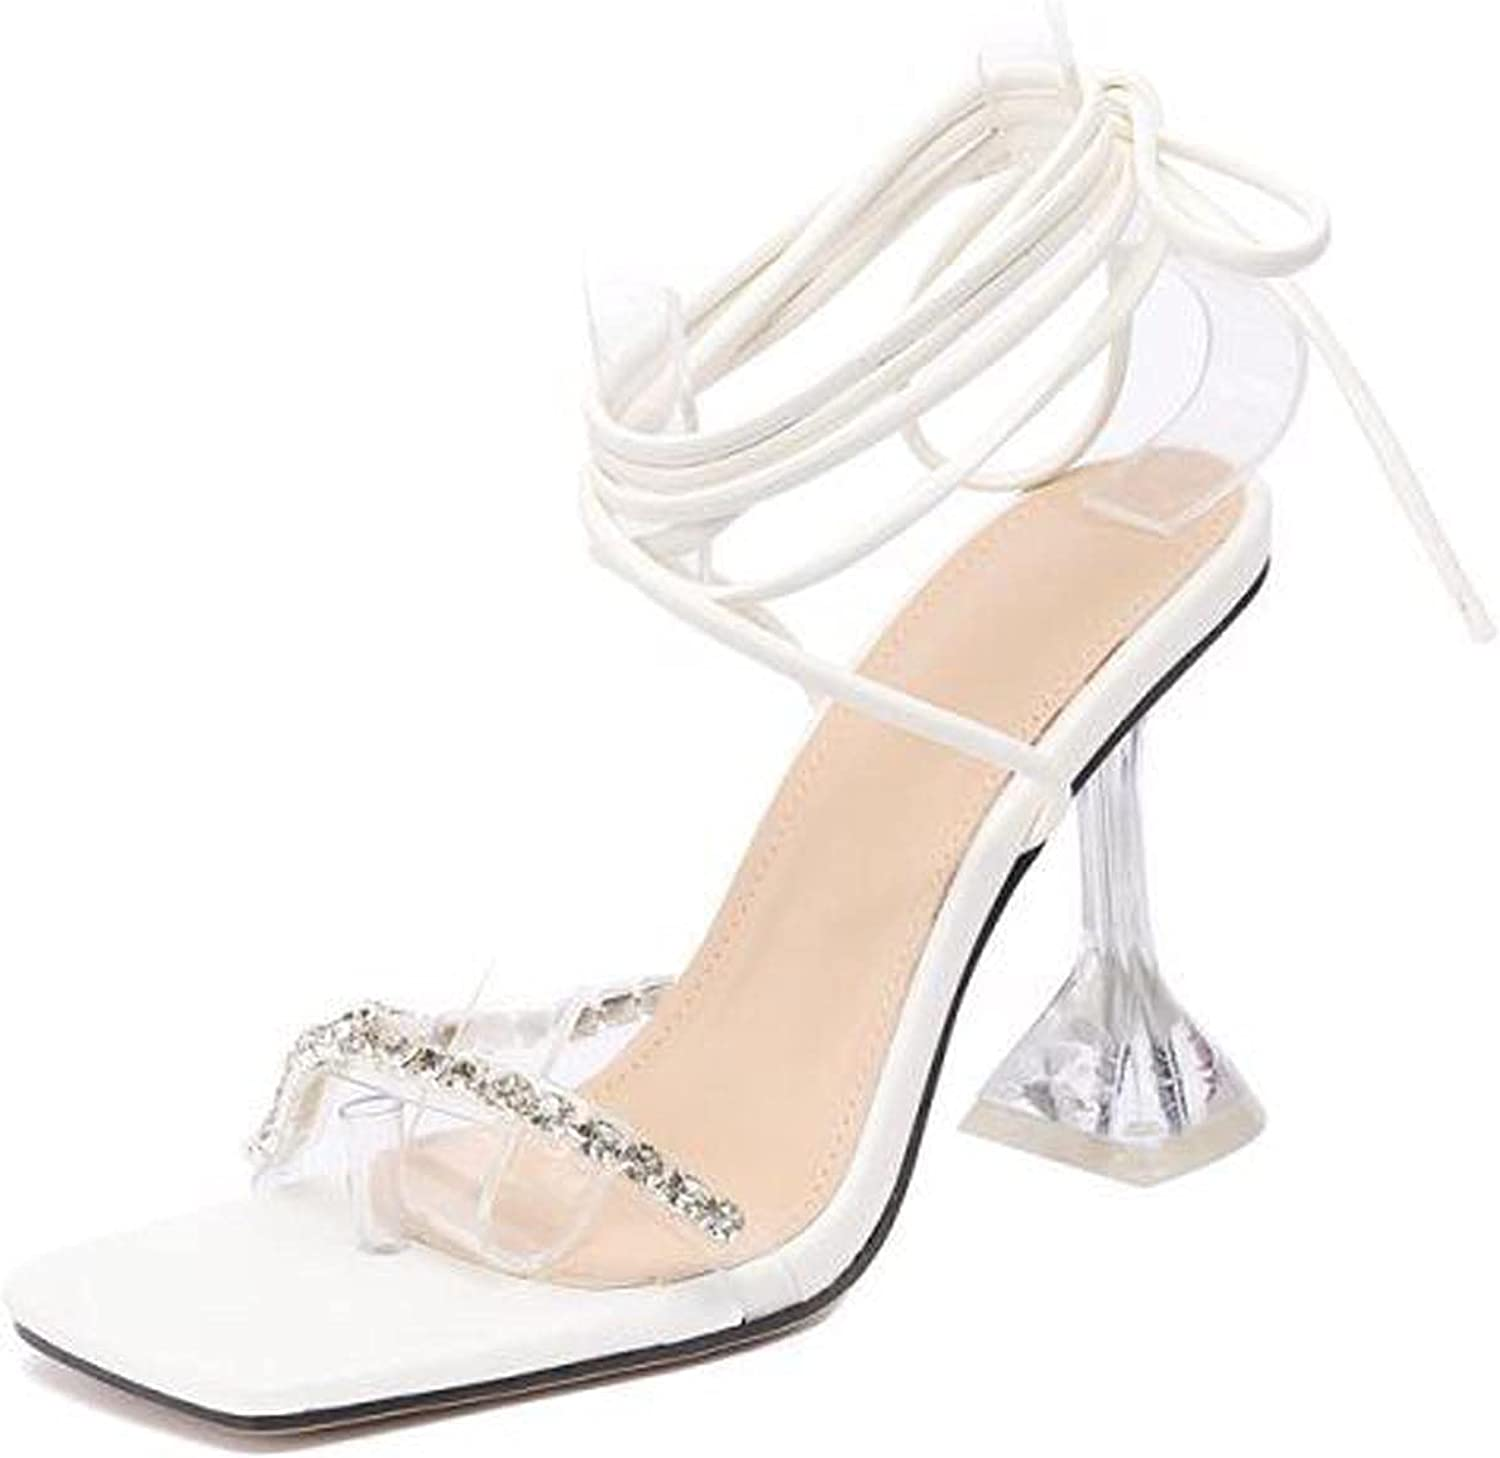 Rhinestone Sandals for Women Cross String Strappy High Heel Sandals Clear Heeled Sandals